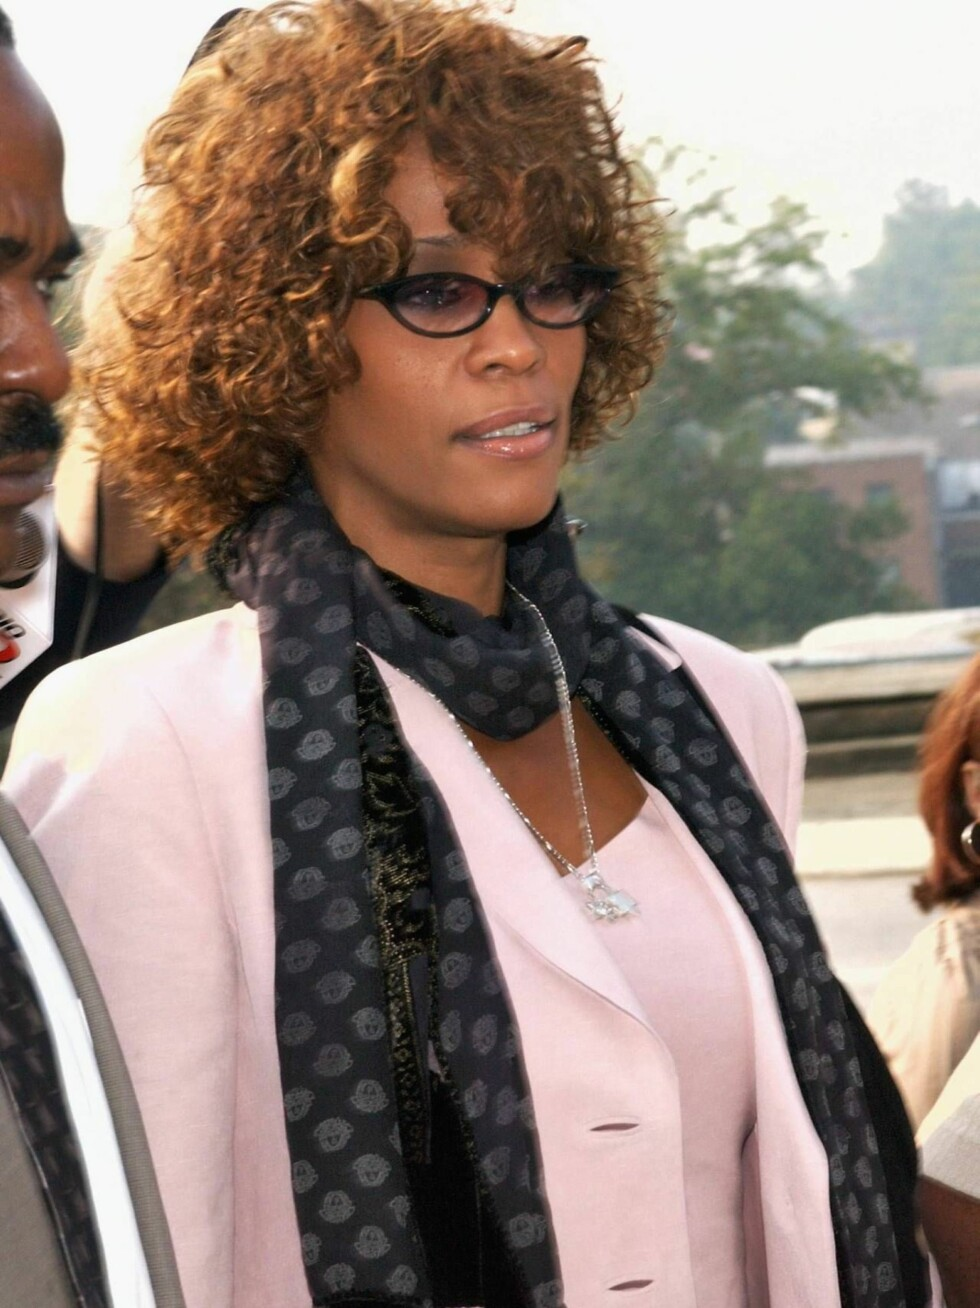 DECATUR, GA - AUGUST 27:  Singer Whitney Houston leaves the DeKalb County Courthouse after a probation violation hearing for her husband, singer Bobby Brown on August 27, 2003 in Decatur, Georgia.  Brown was sentenced to 14 days in jail followed by 60 day Foto: All Over Press